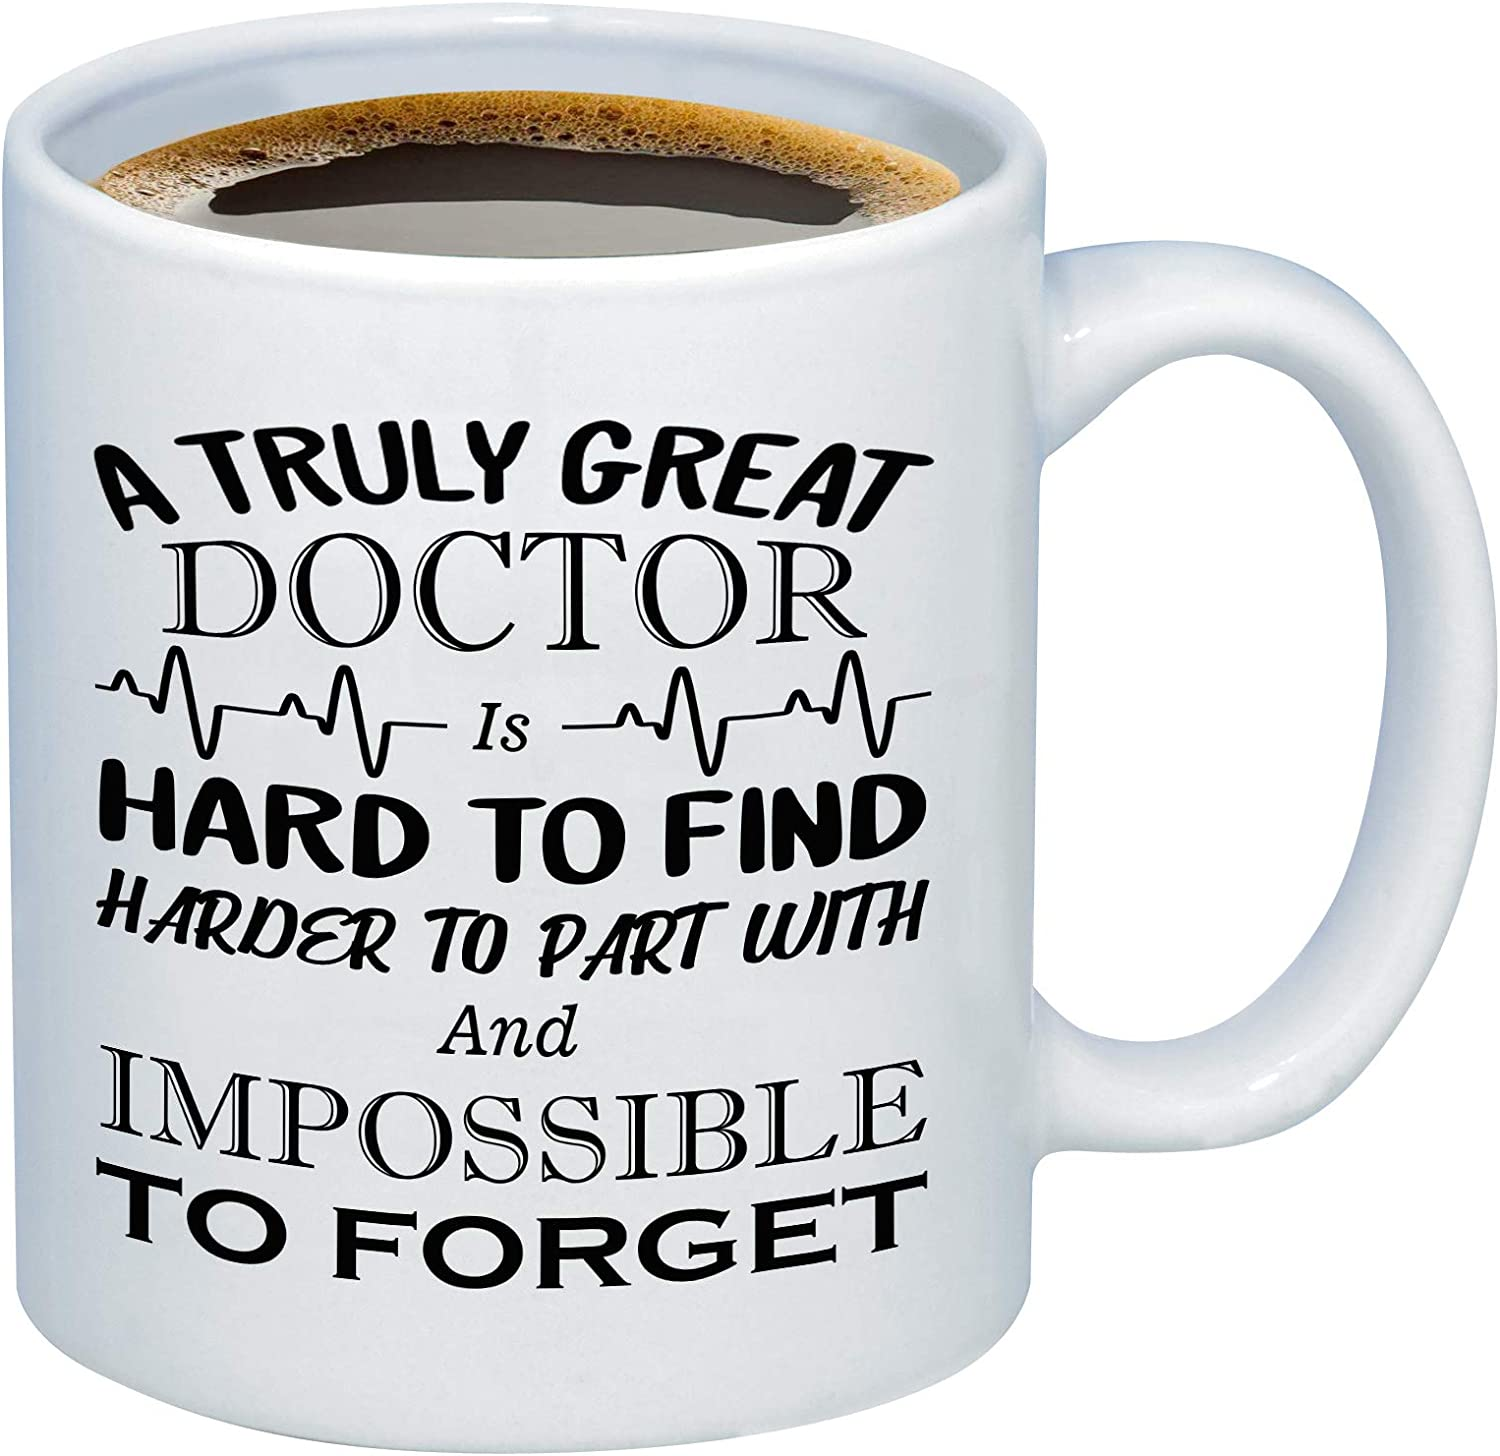 Doctor Retirement – A Truly Great Doctor is Hard To Find – 11 Ounce Coffee Mug Cup – Unique and Memorable Physician Retirement Gifts by Funny Bone Products